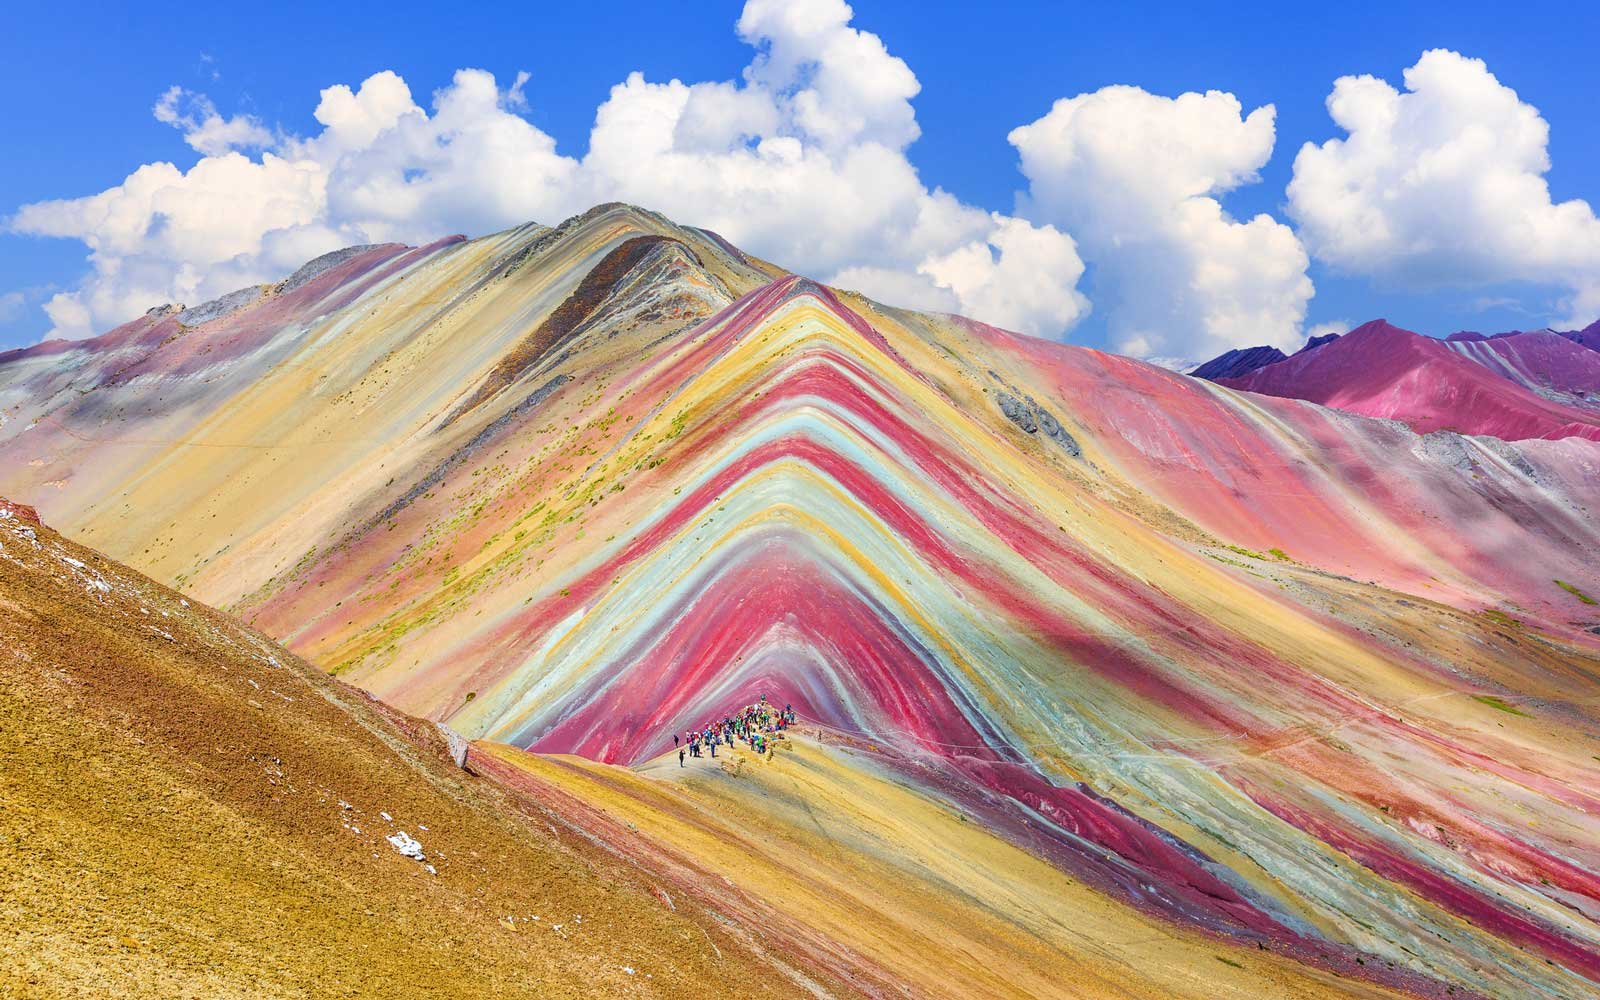 The Rainbow Mountain in Peru Looks Unreal — But You Can Actually Go Here